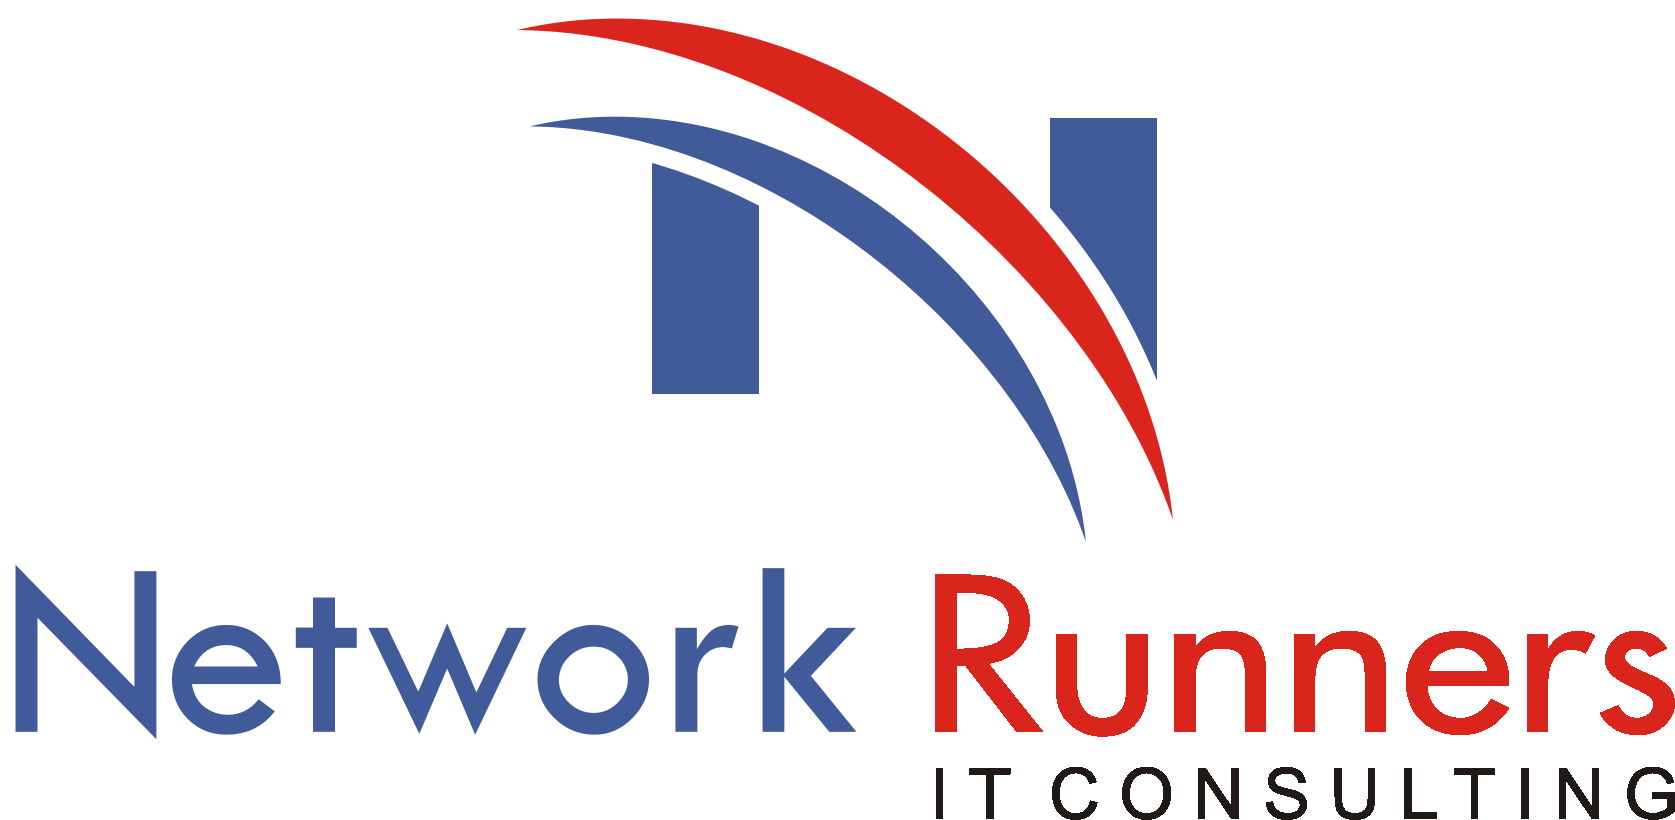 Network Runners